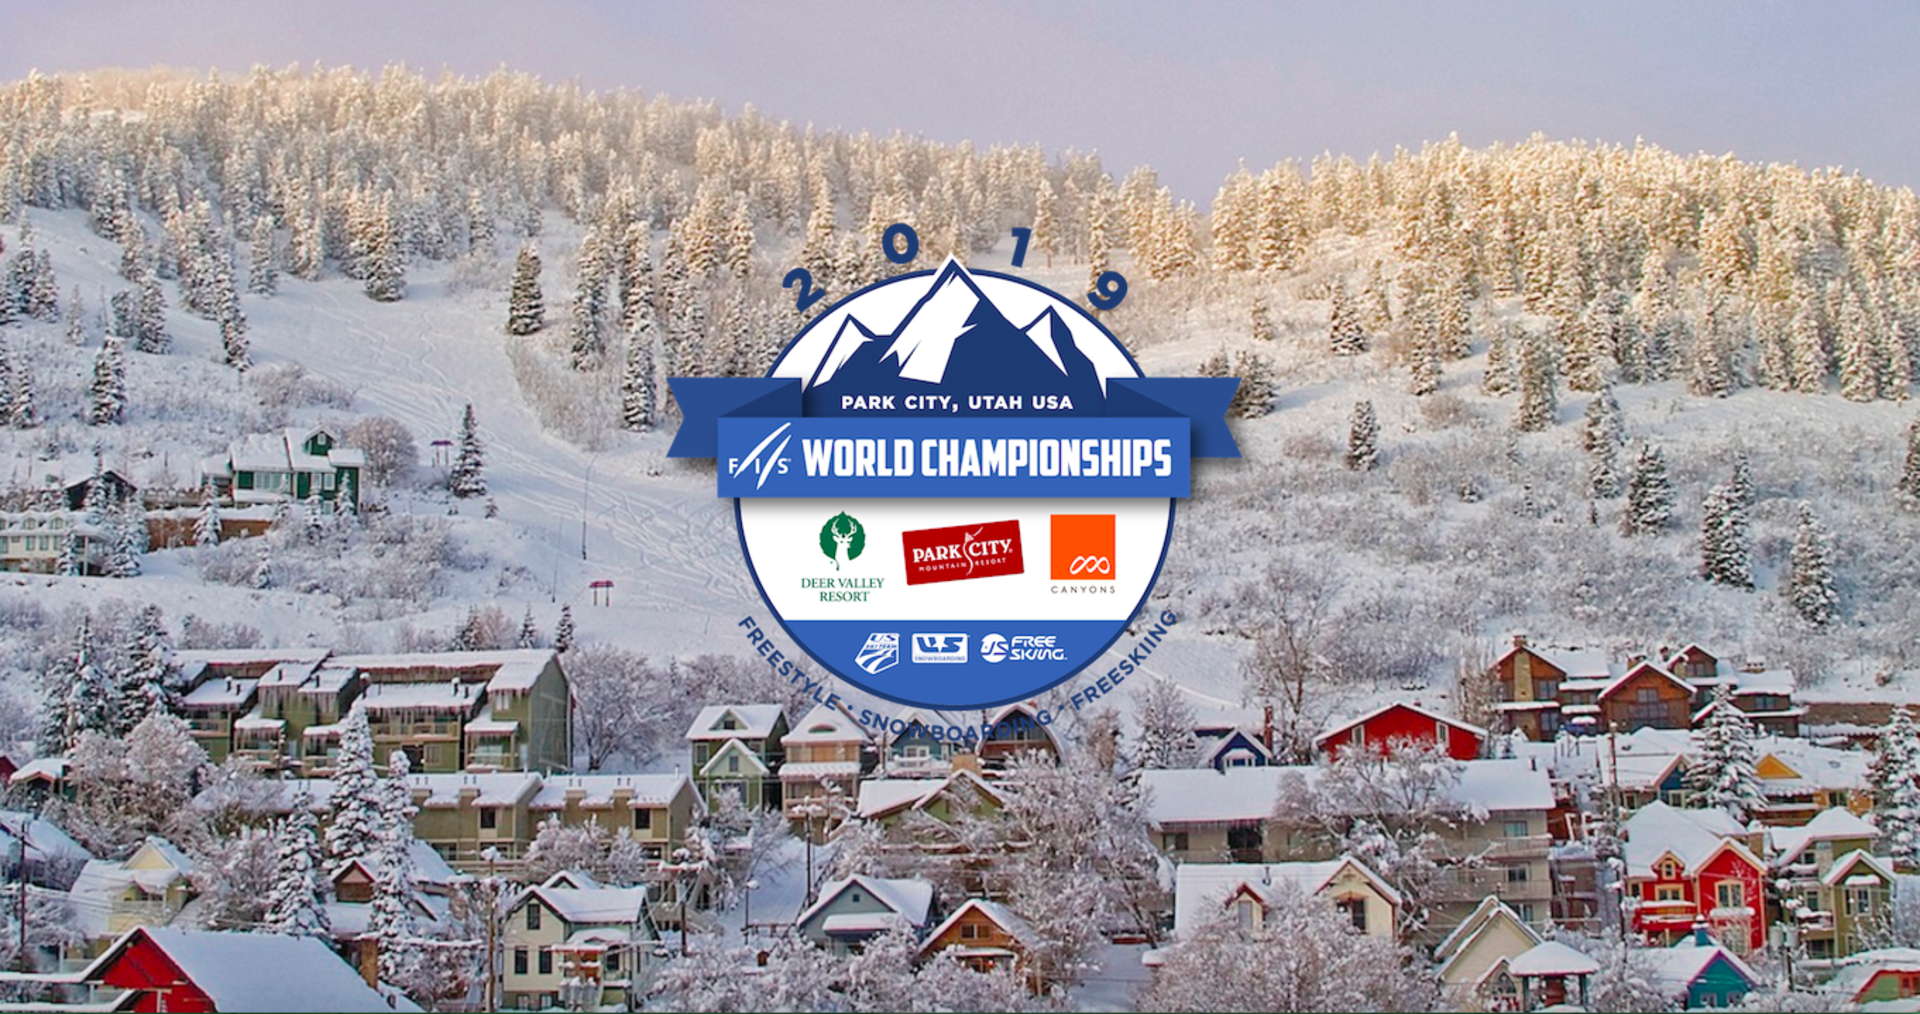 World Championship 2019 in Deer Valley and Park City Mountain Resorts